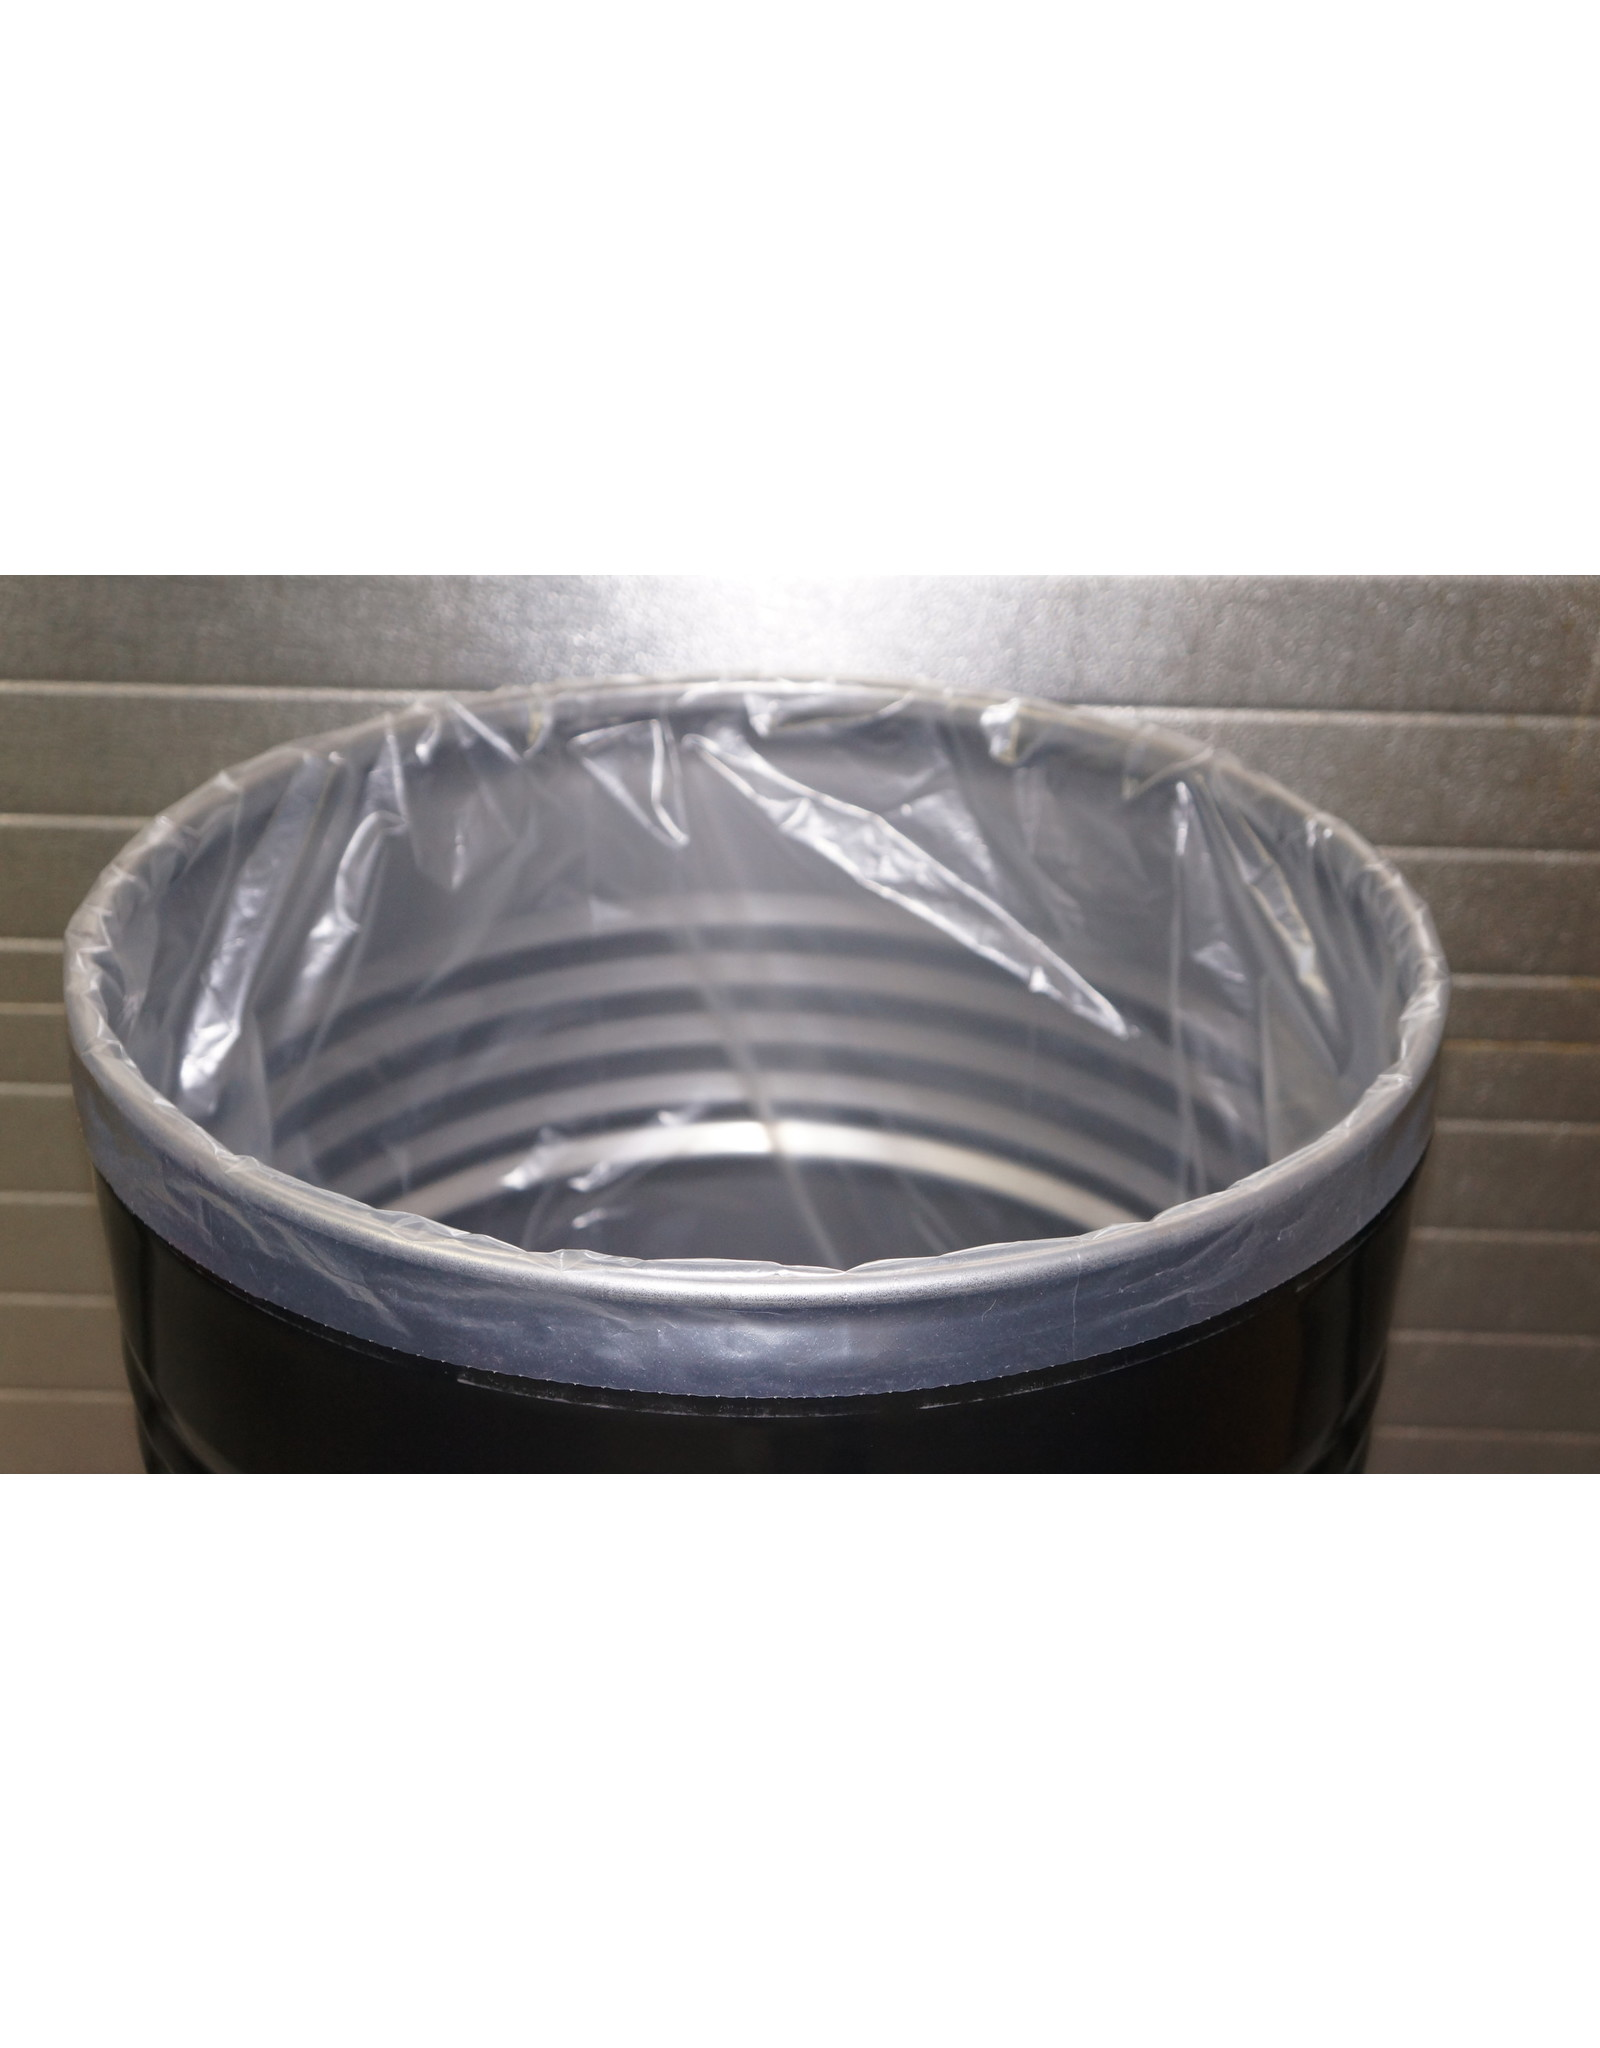 Barrelkings Garbage Bag BinBin 200 L Transparent 100 Pcs.